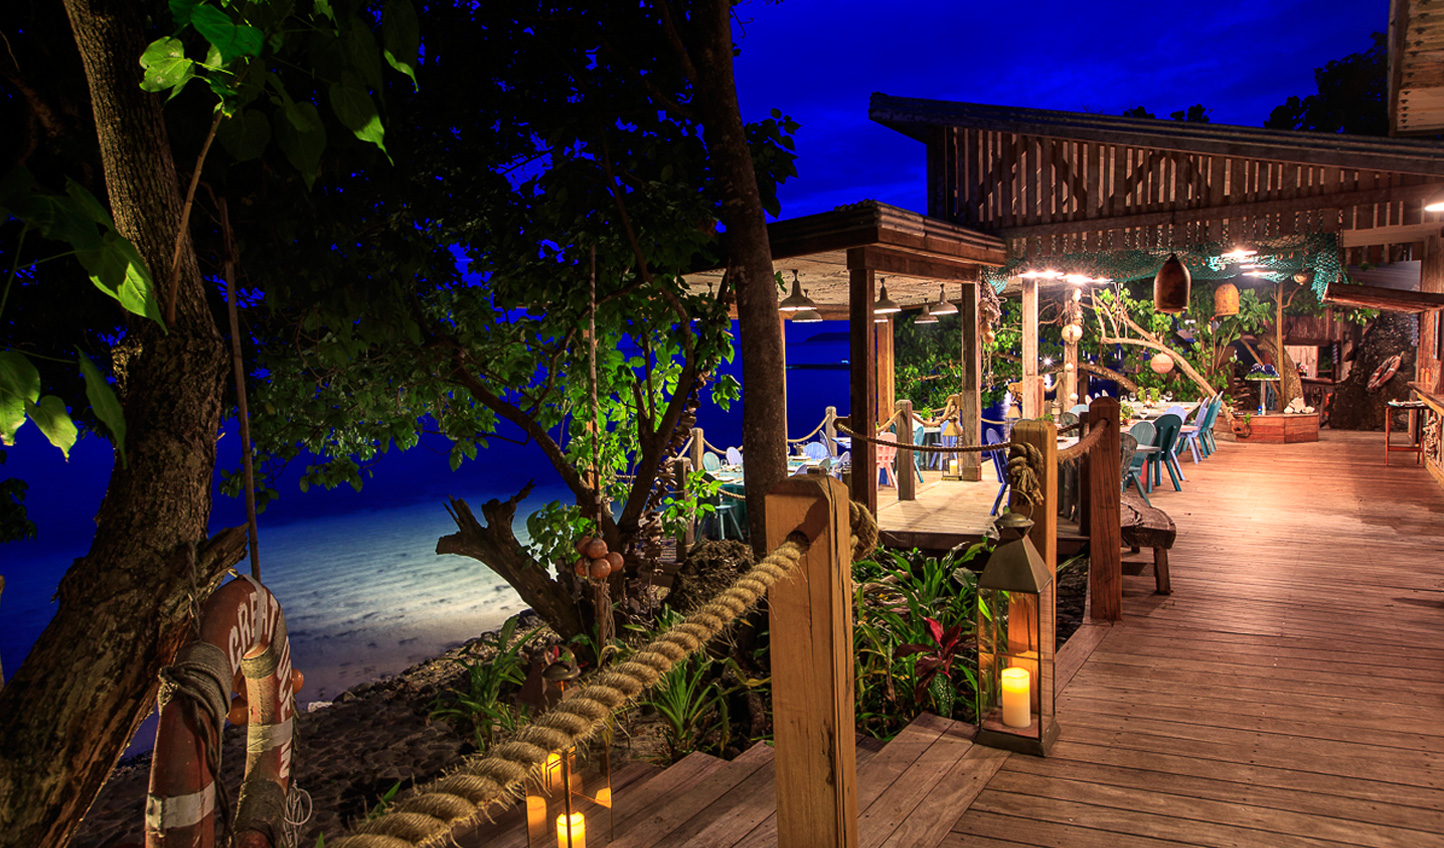 Dine at the ocean's edge